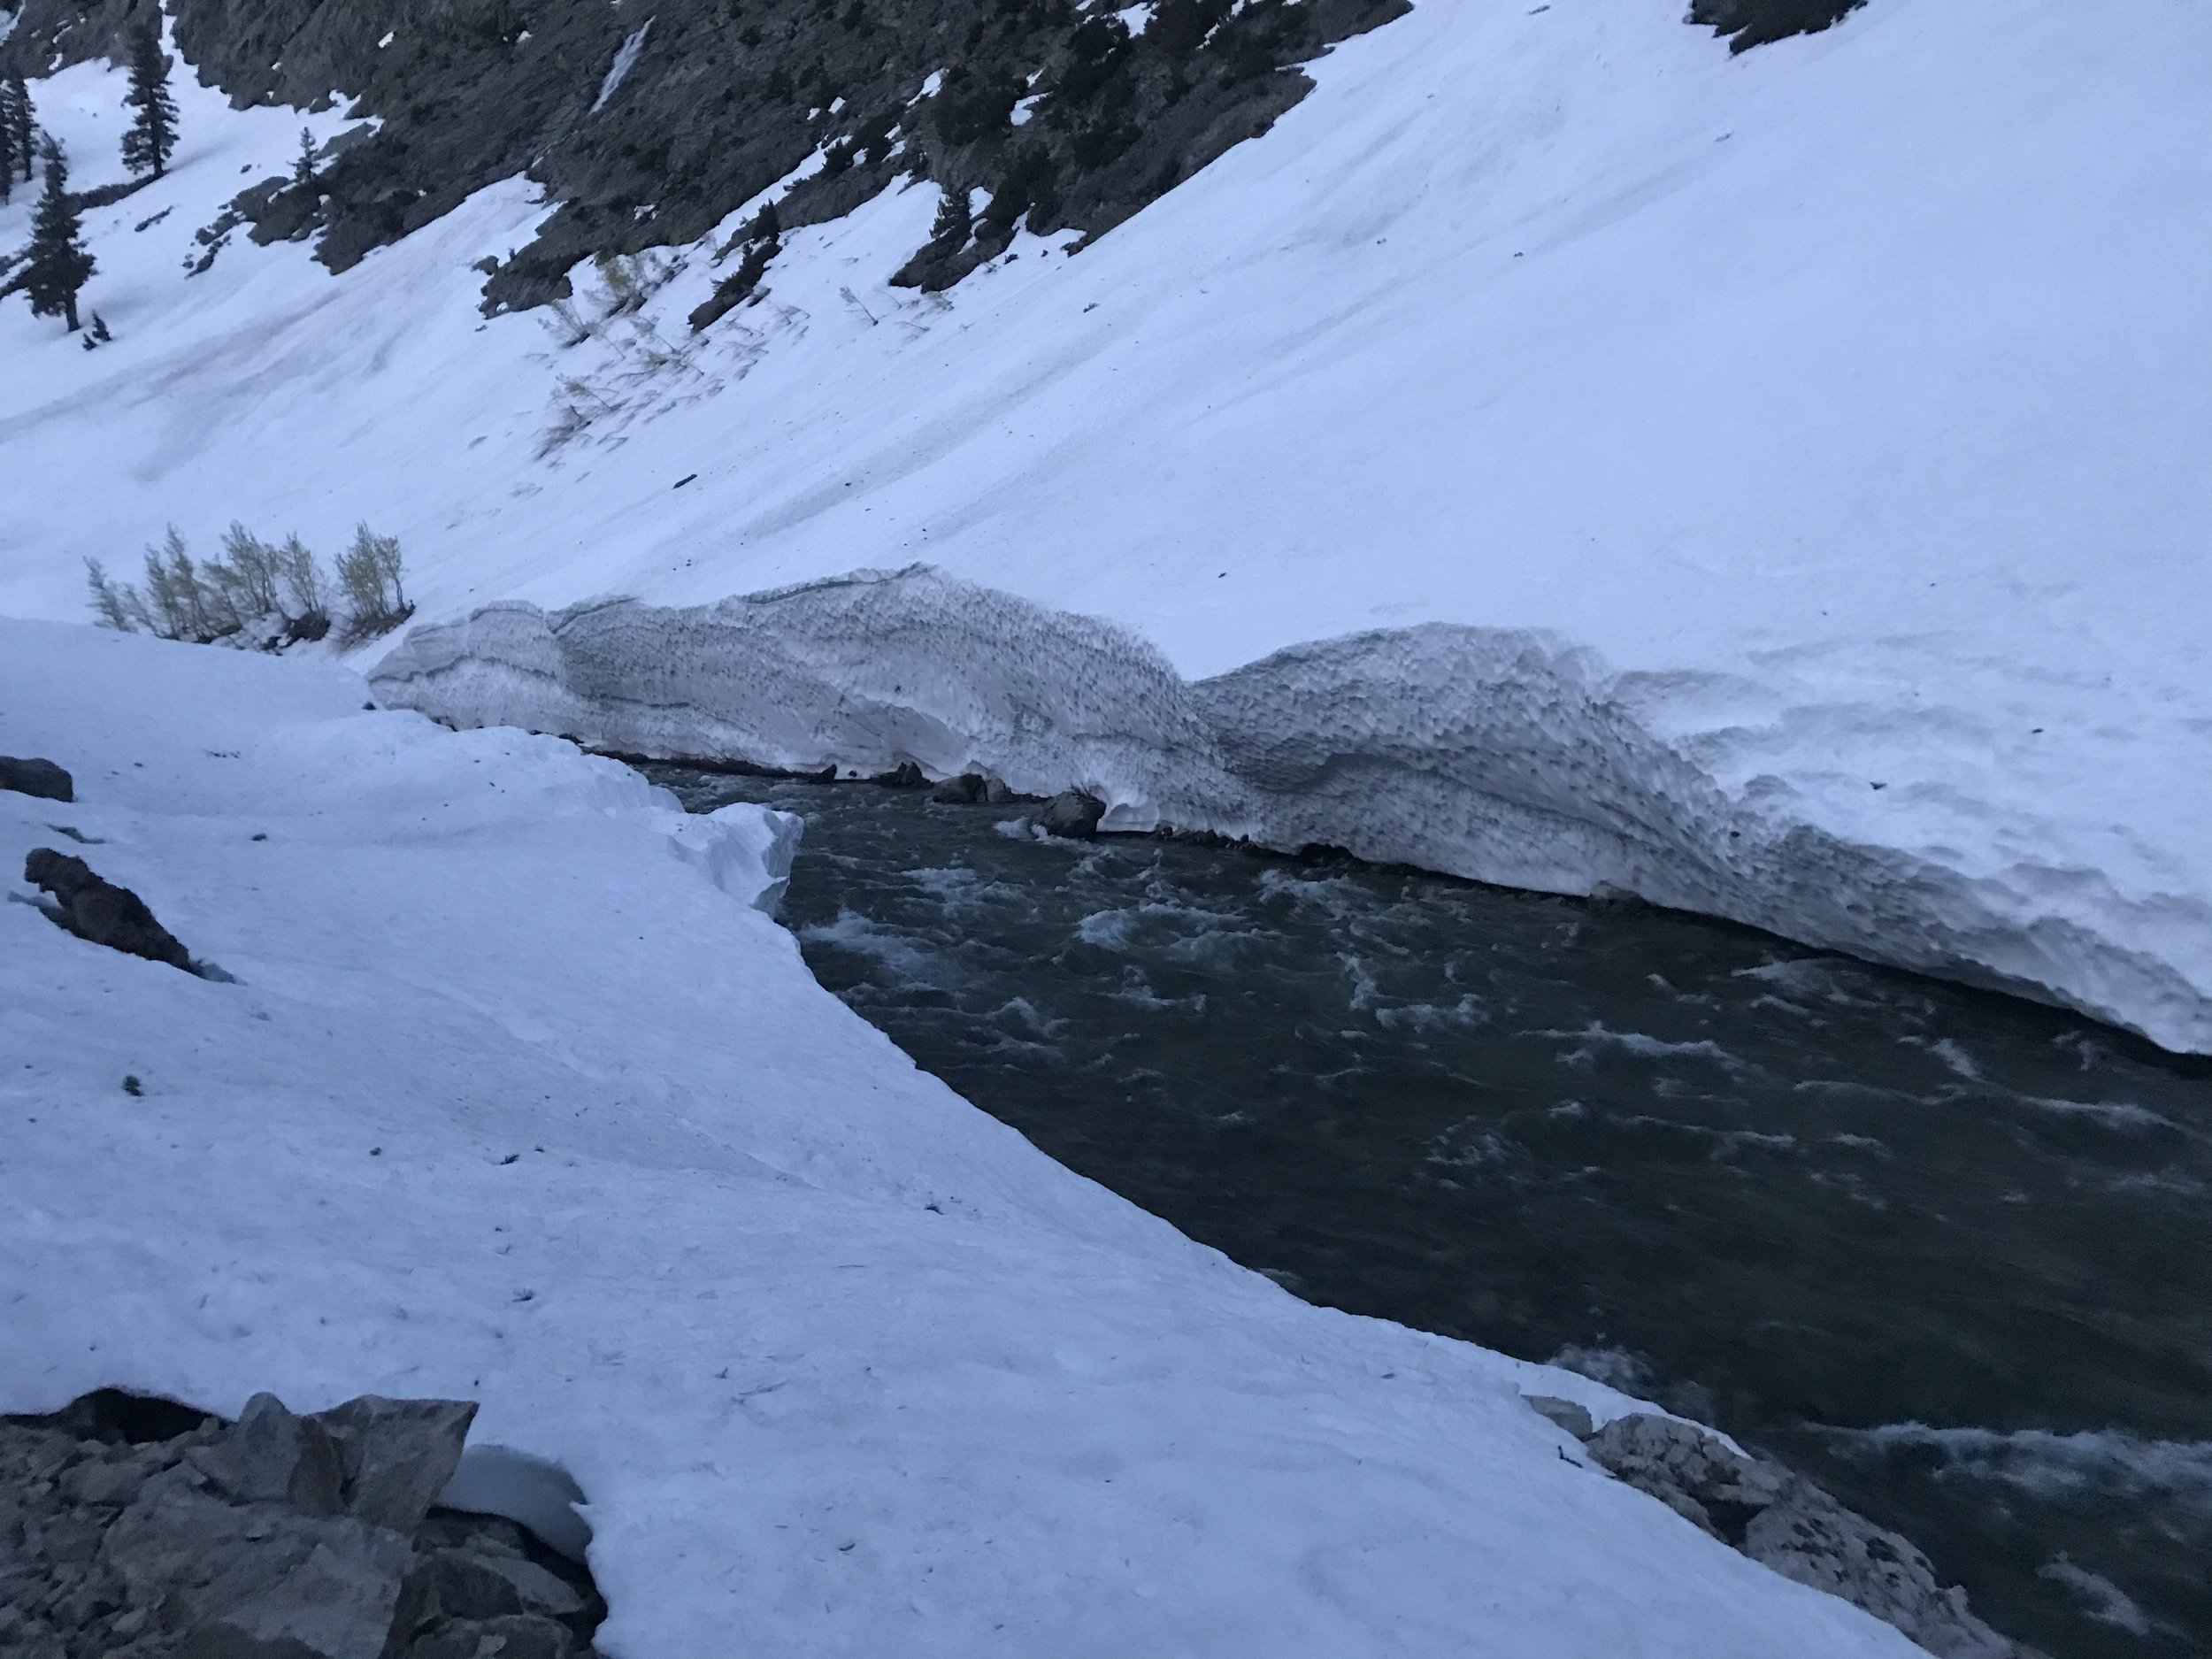 South Fork of the San Joaquin and the remnants of big avalanches through the previous winter.